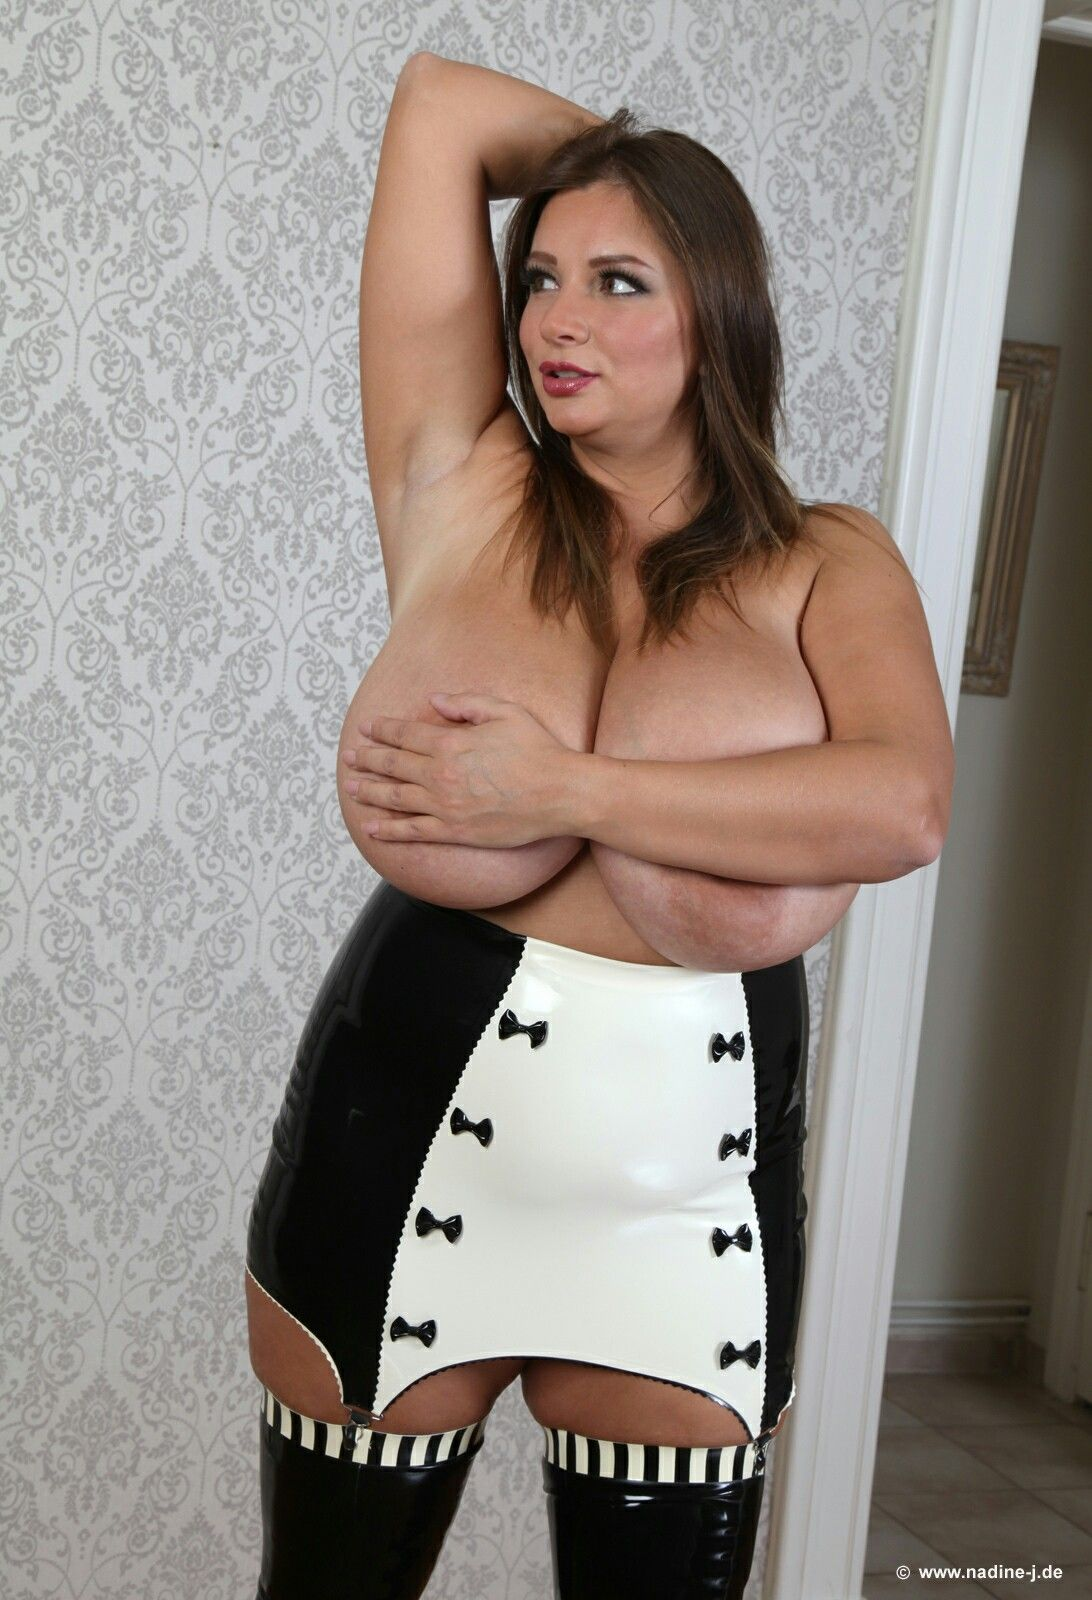 Full figure pussy boobs pictures